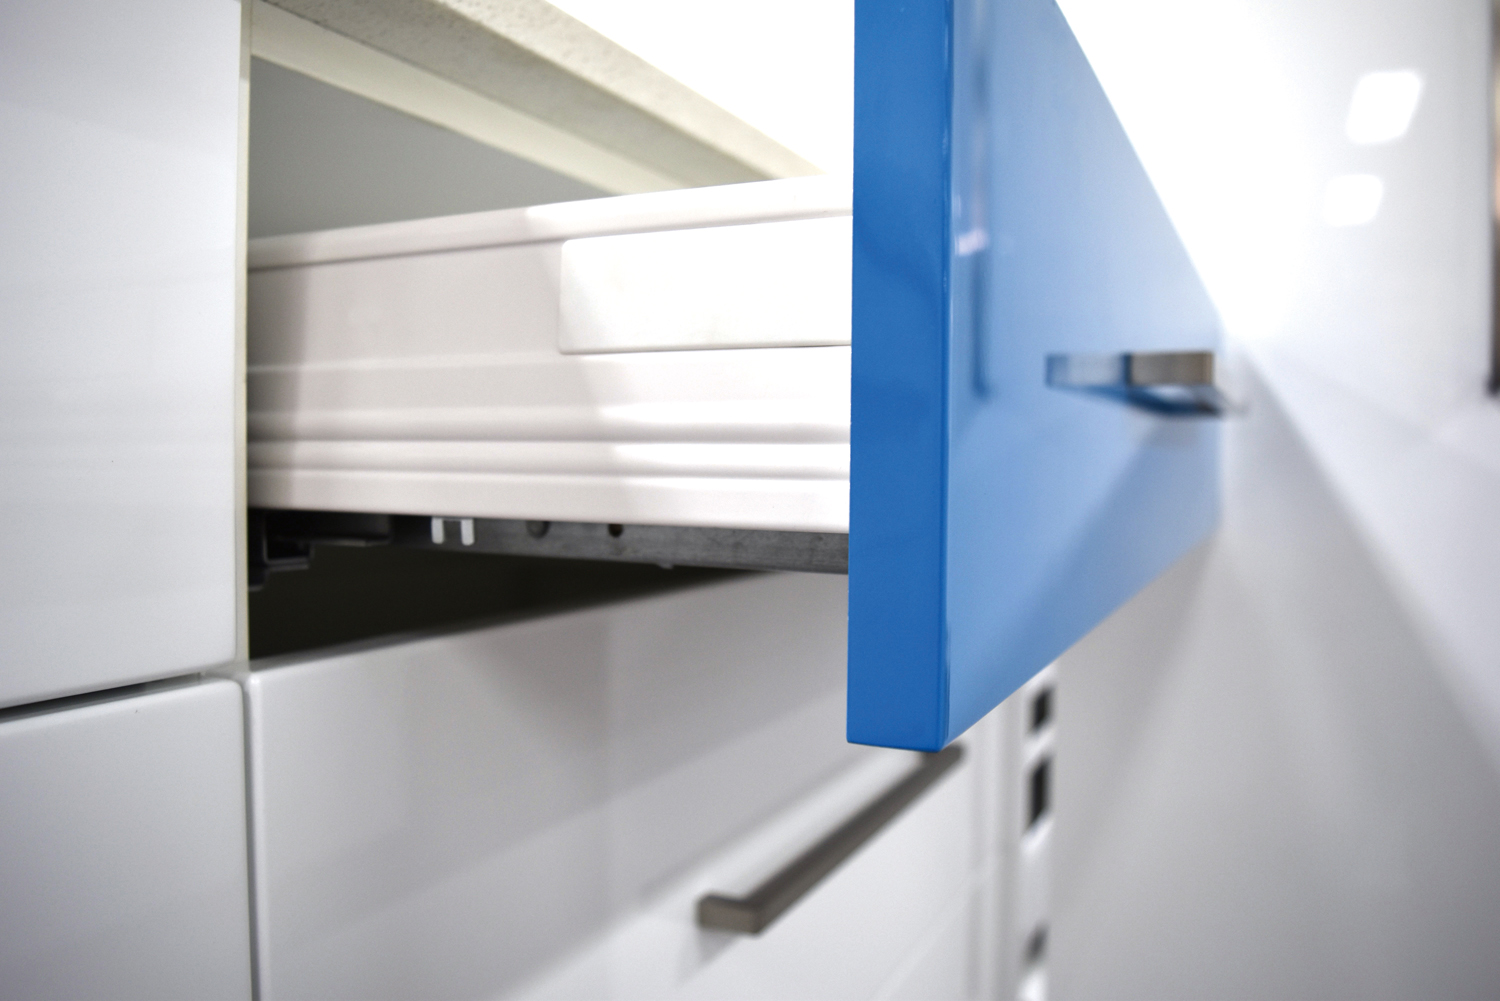 Perfect fit: cabinet hardware